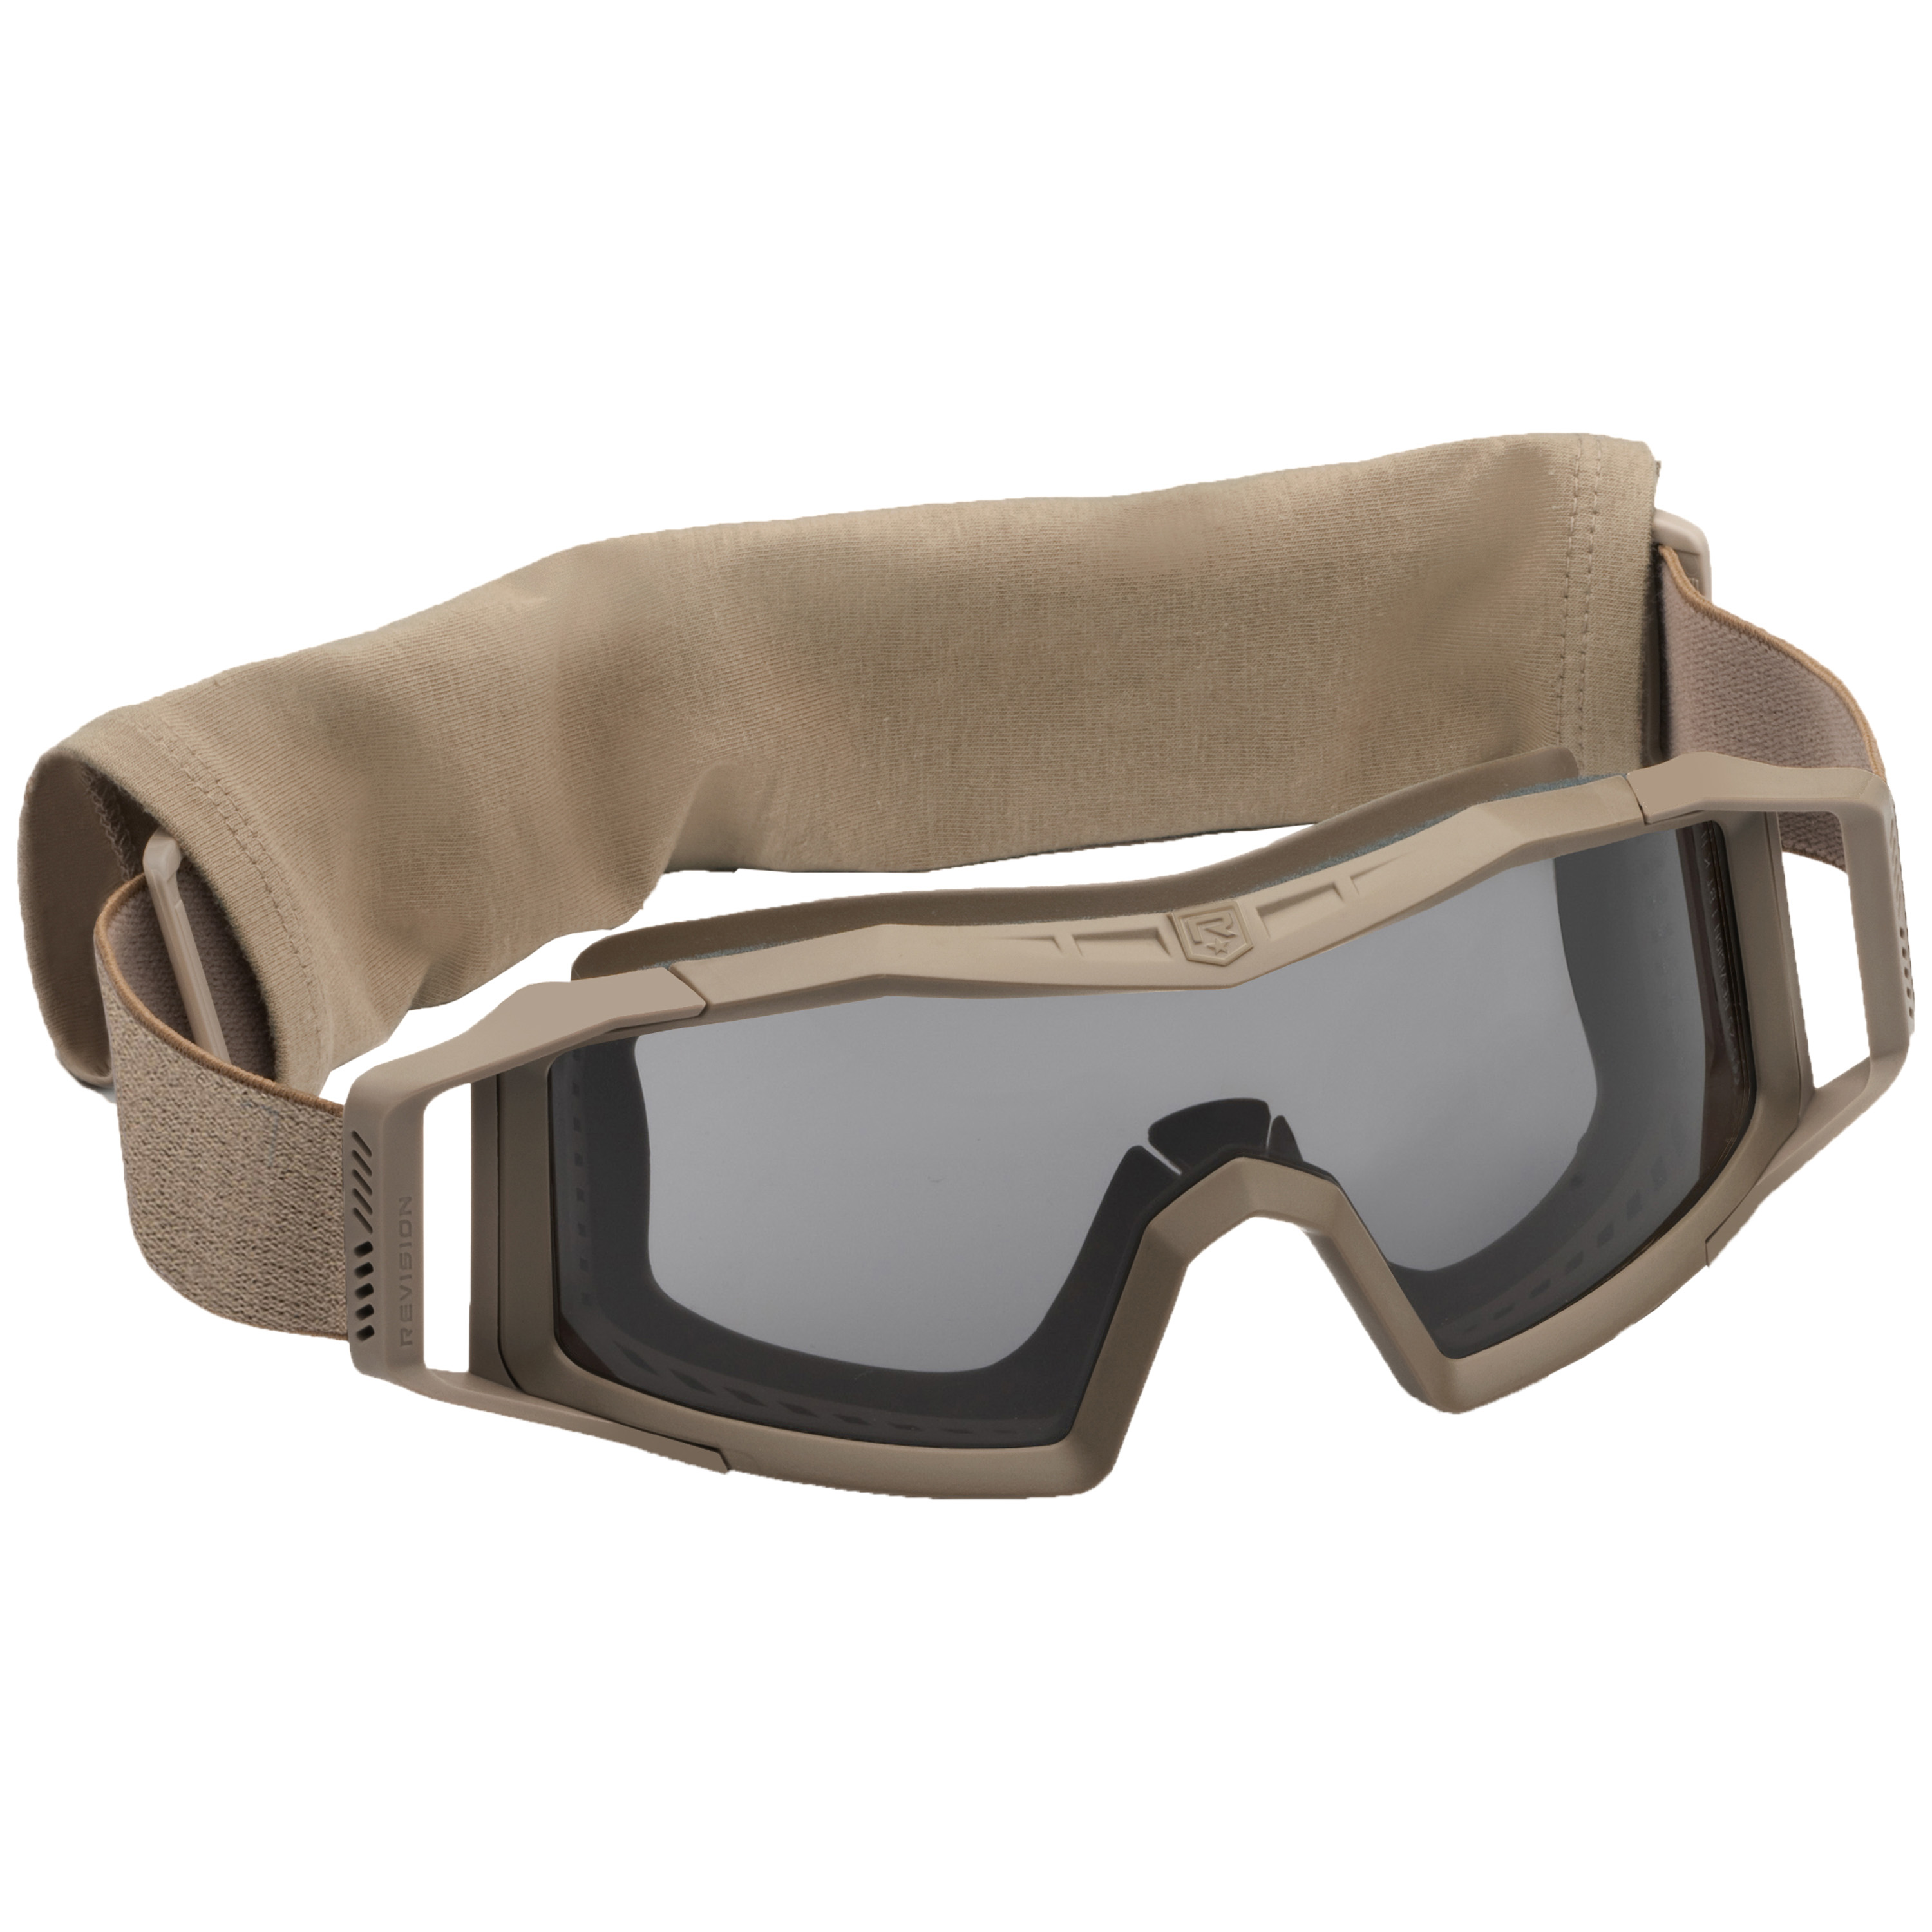 Revision Lunettes Wolfspider Basic tan verre smoke